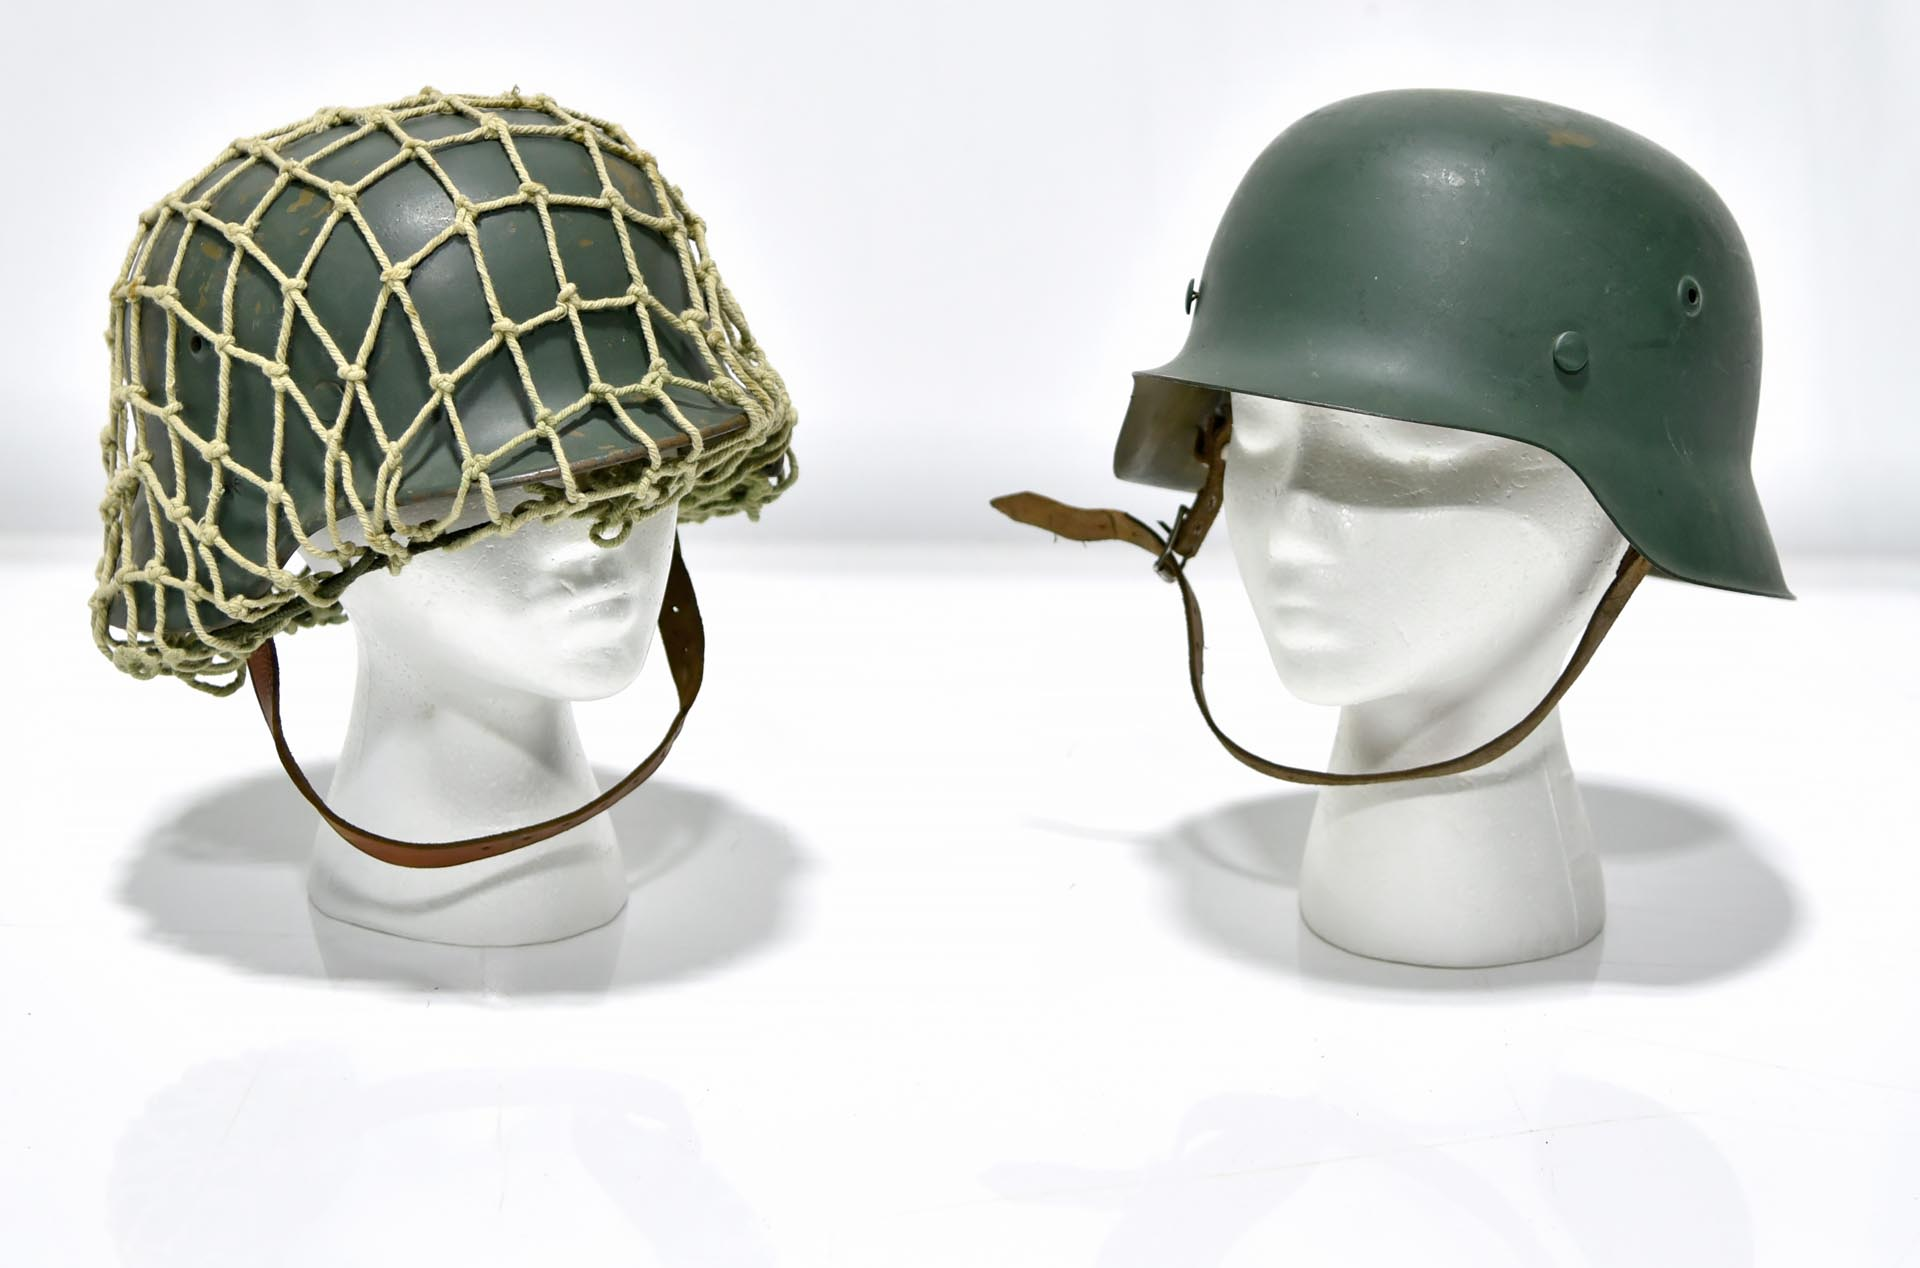 Lot of 2 WWII German Military Helmets - One with Camouflage Netting